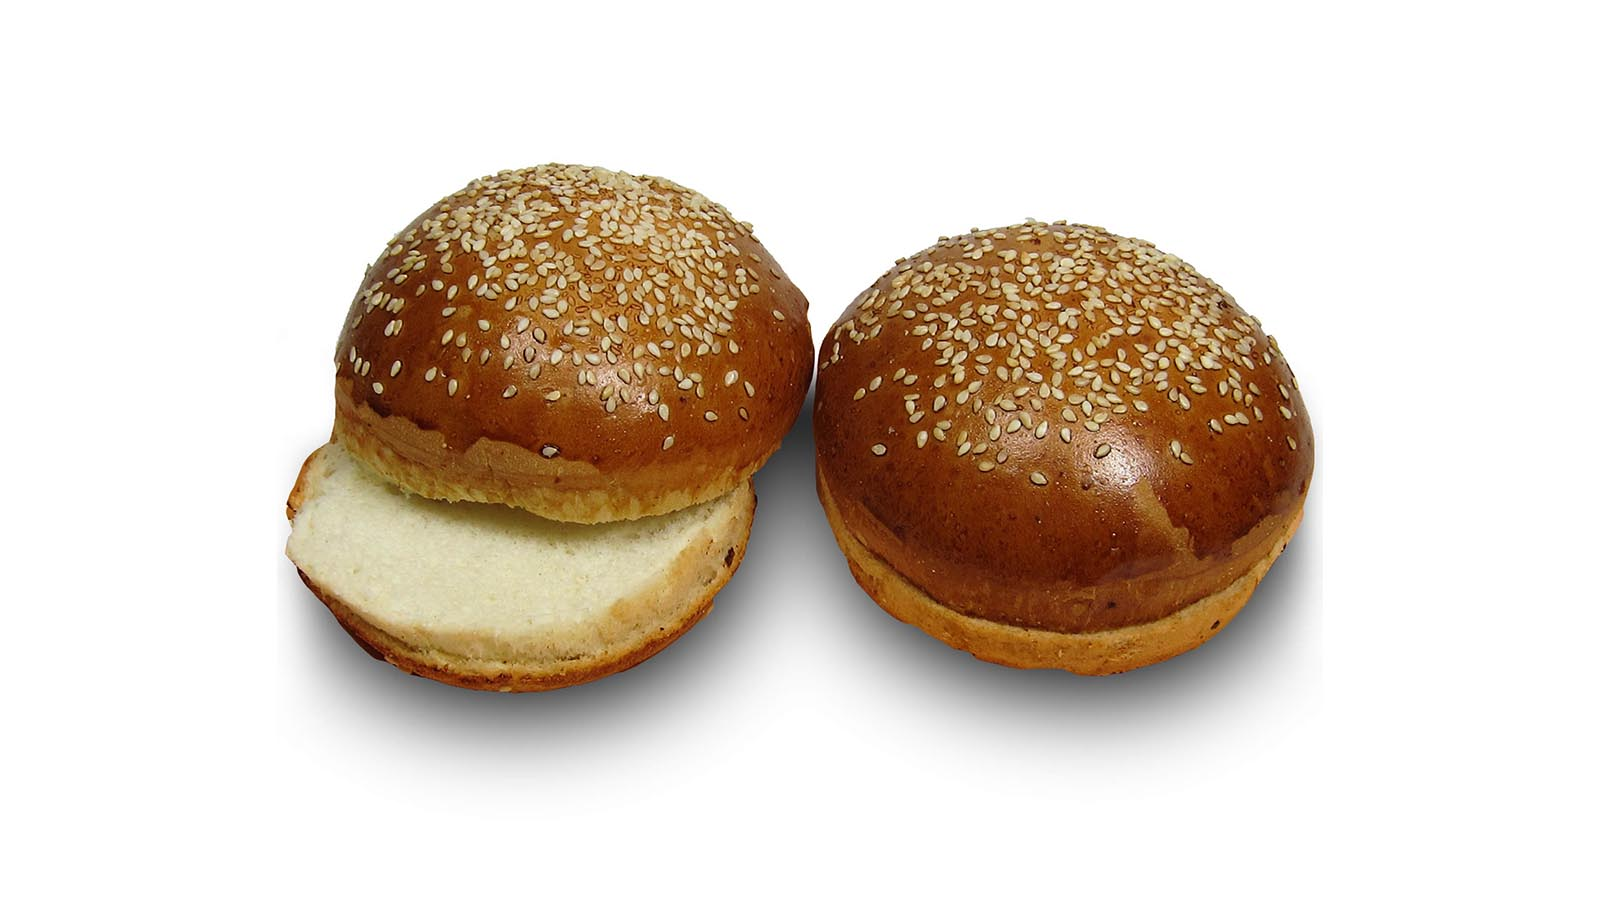 Burger brioche bun classic with sesame seeds